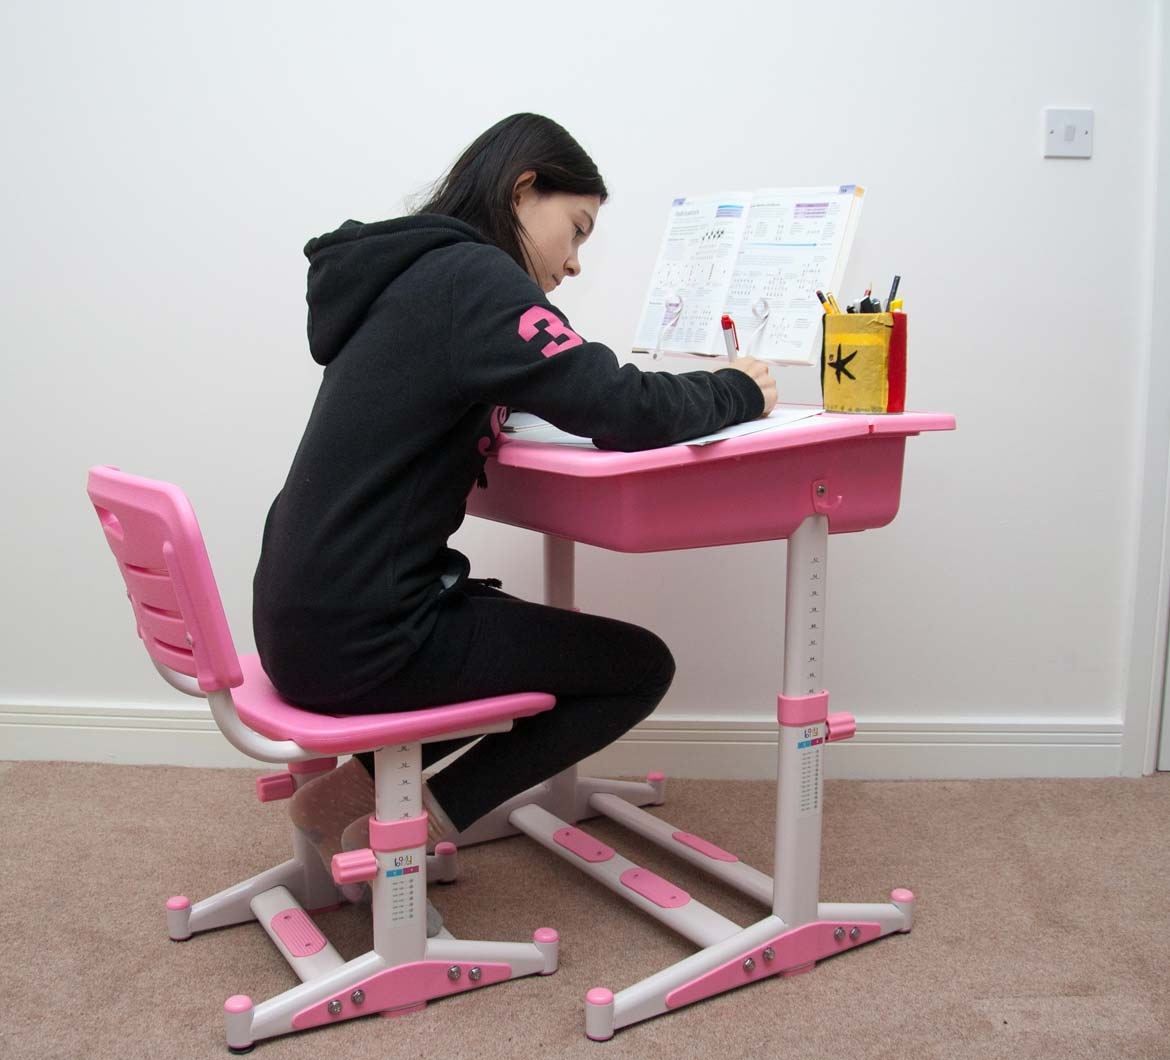 study-desk-for-kids-ergonomic-kids-table-chair-portfolio-minuet-pink-1